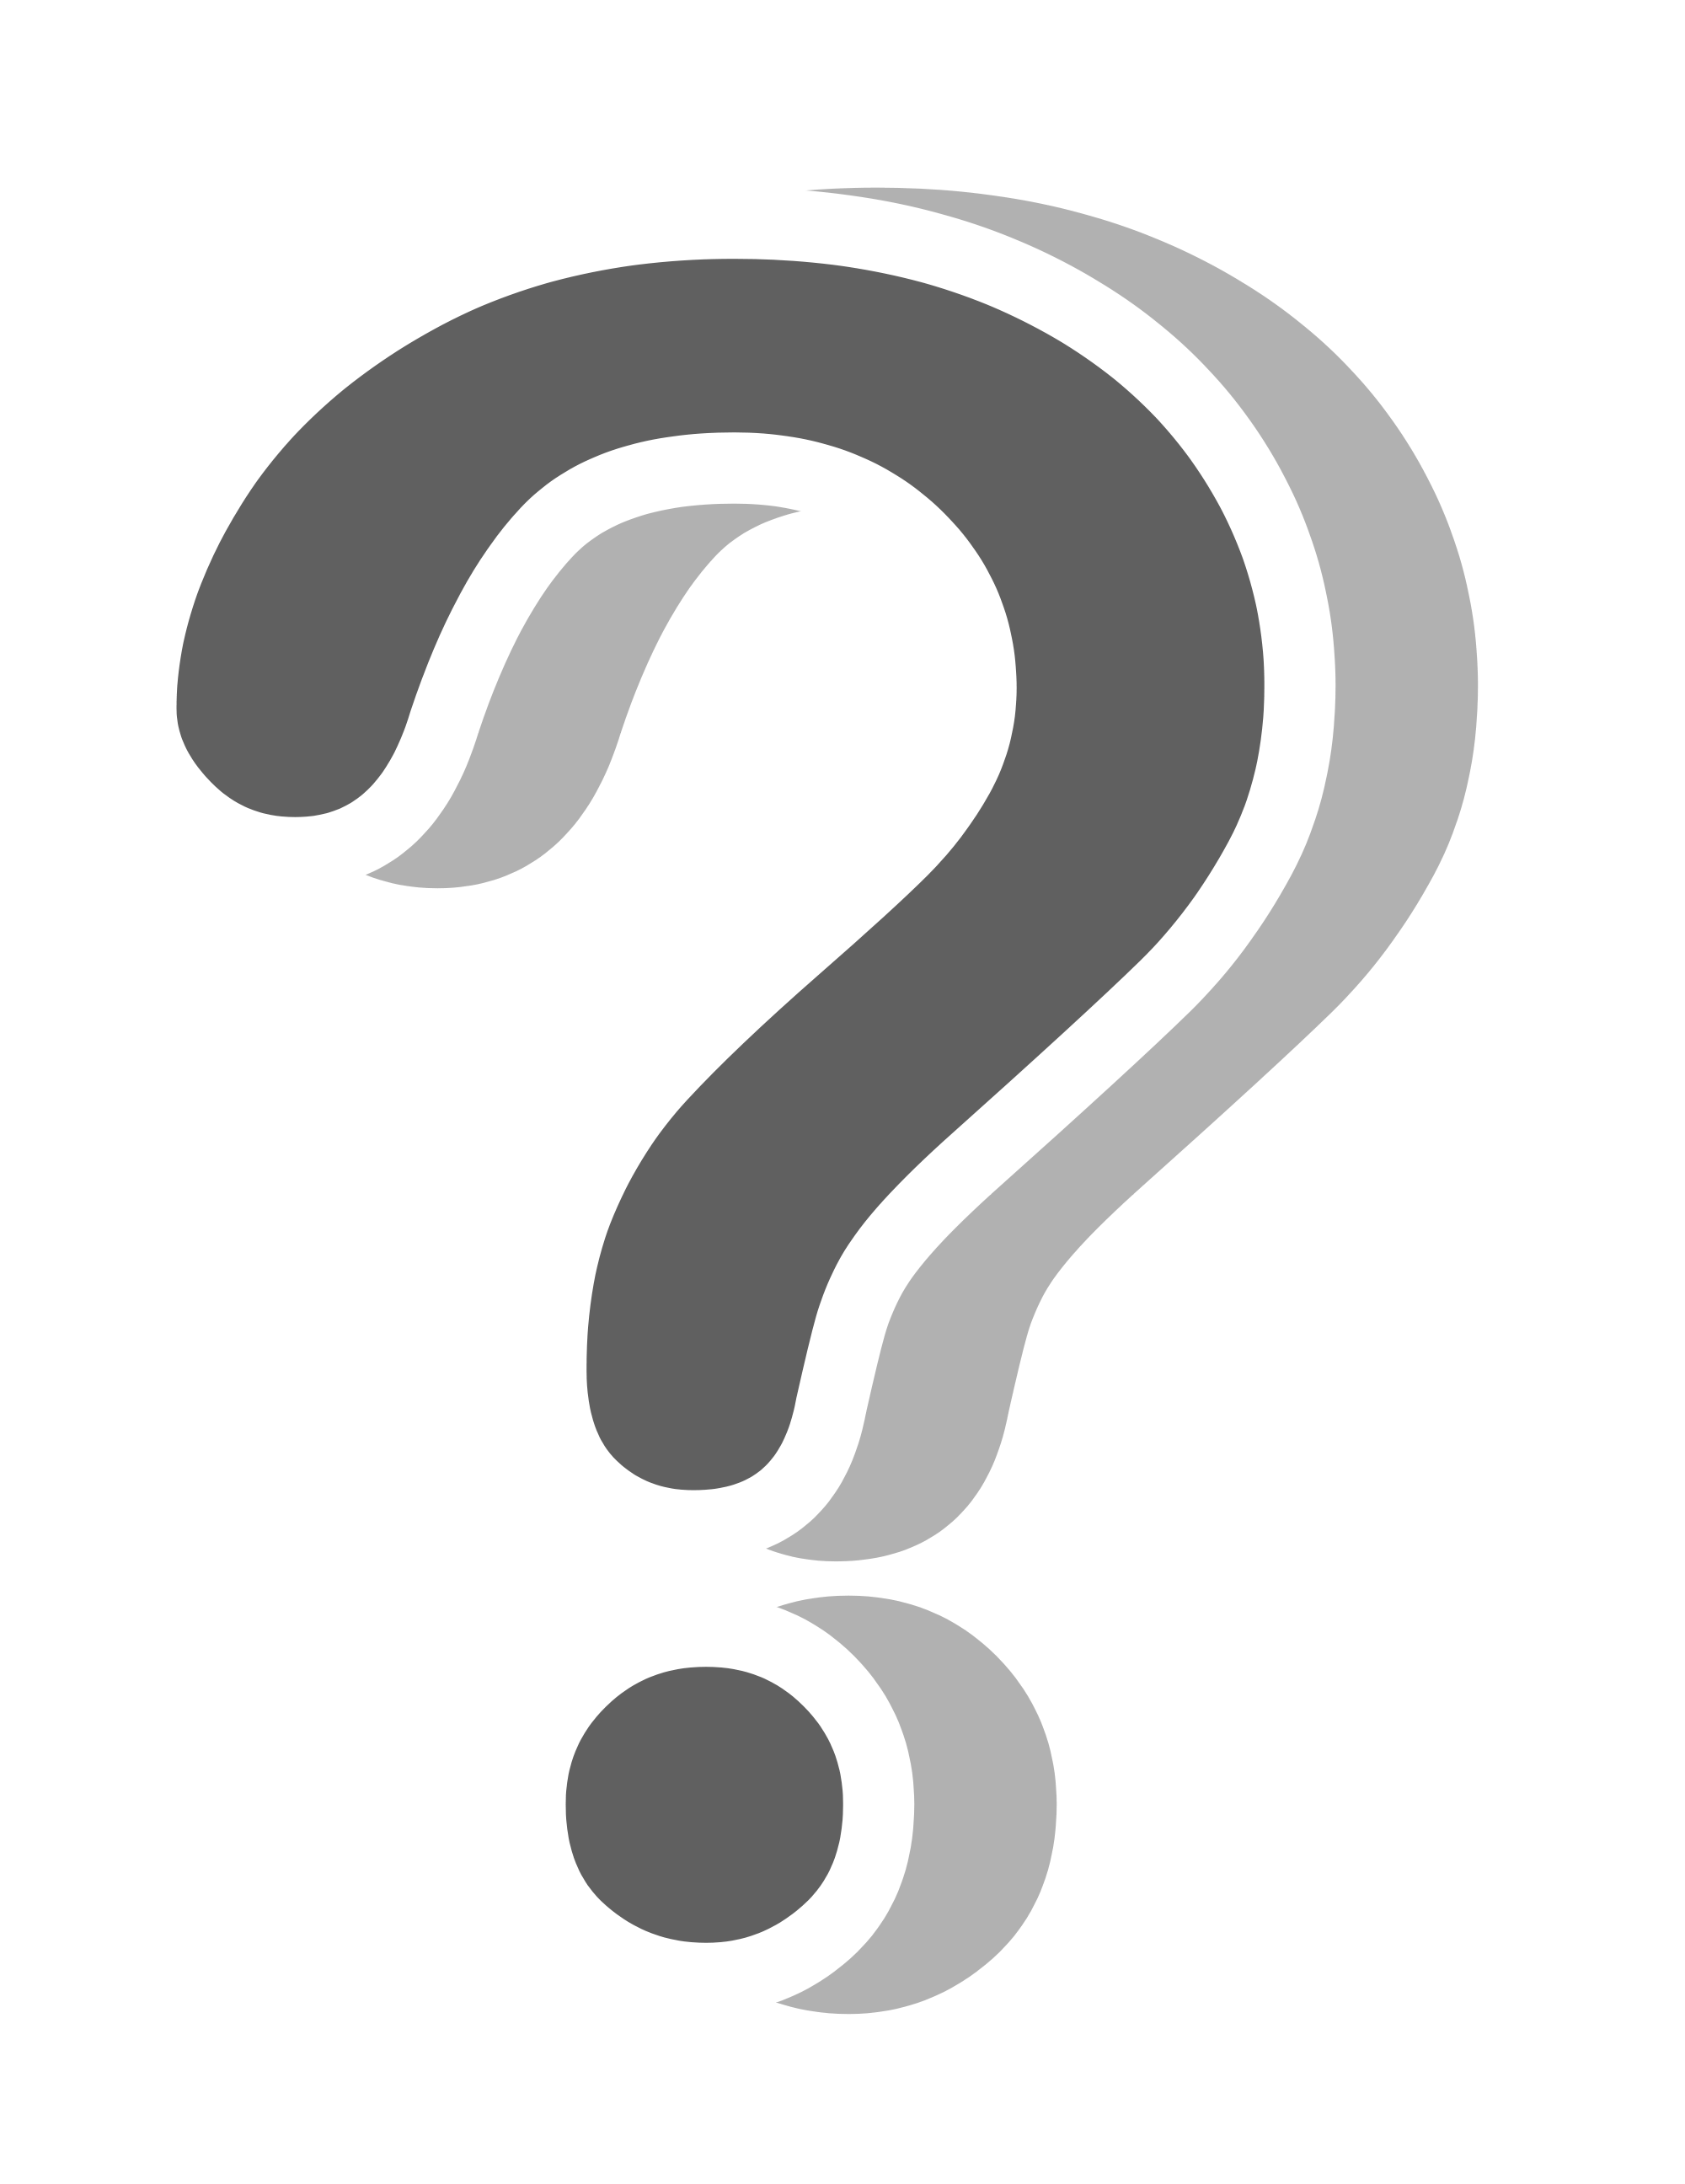 Question mark icon png transparent. Sticker stickpng download icons